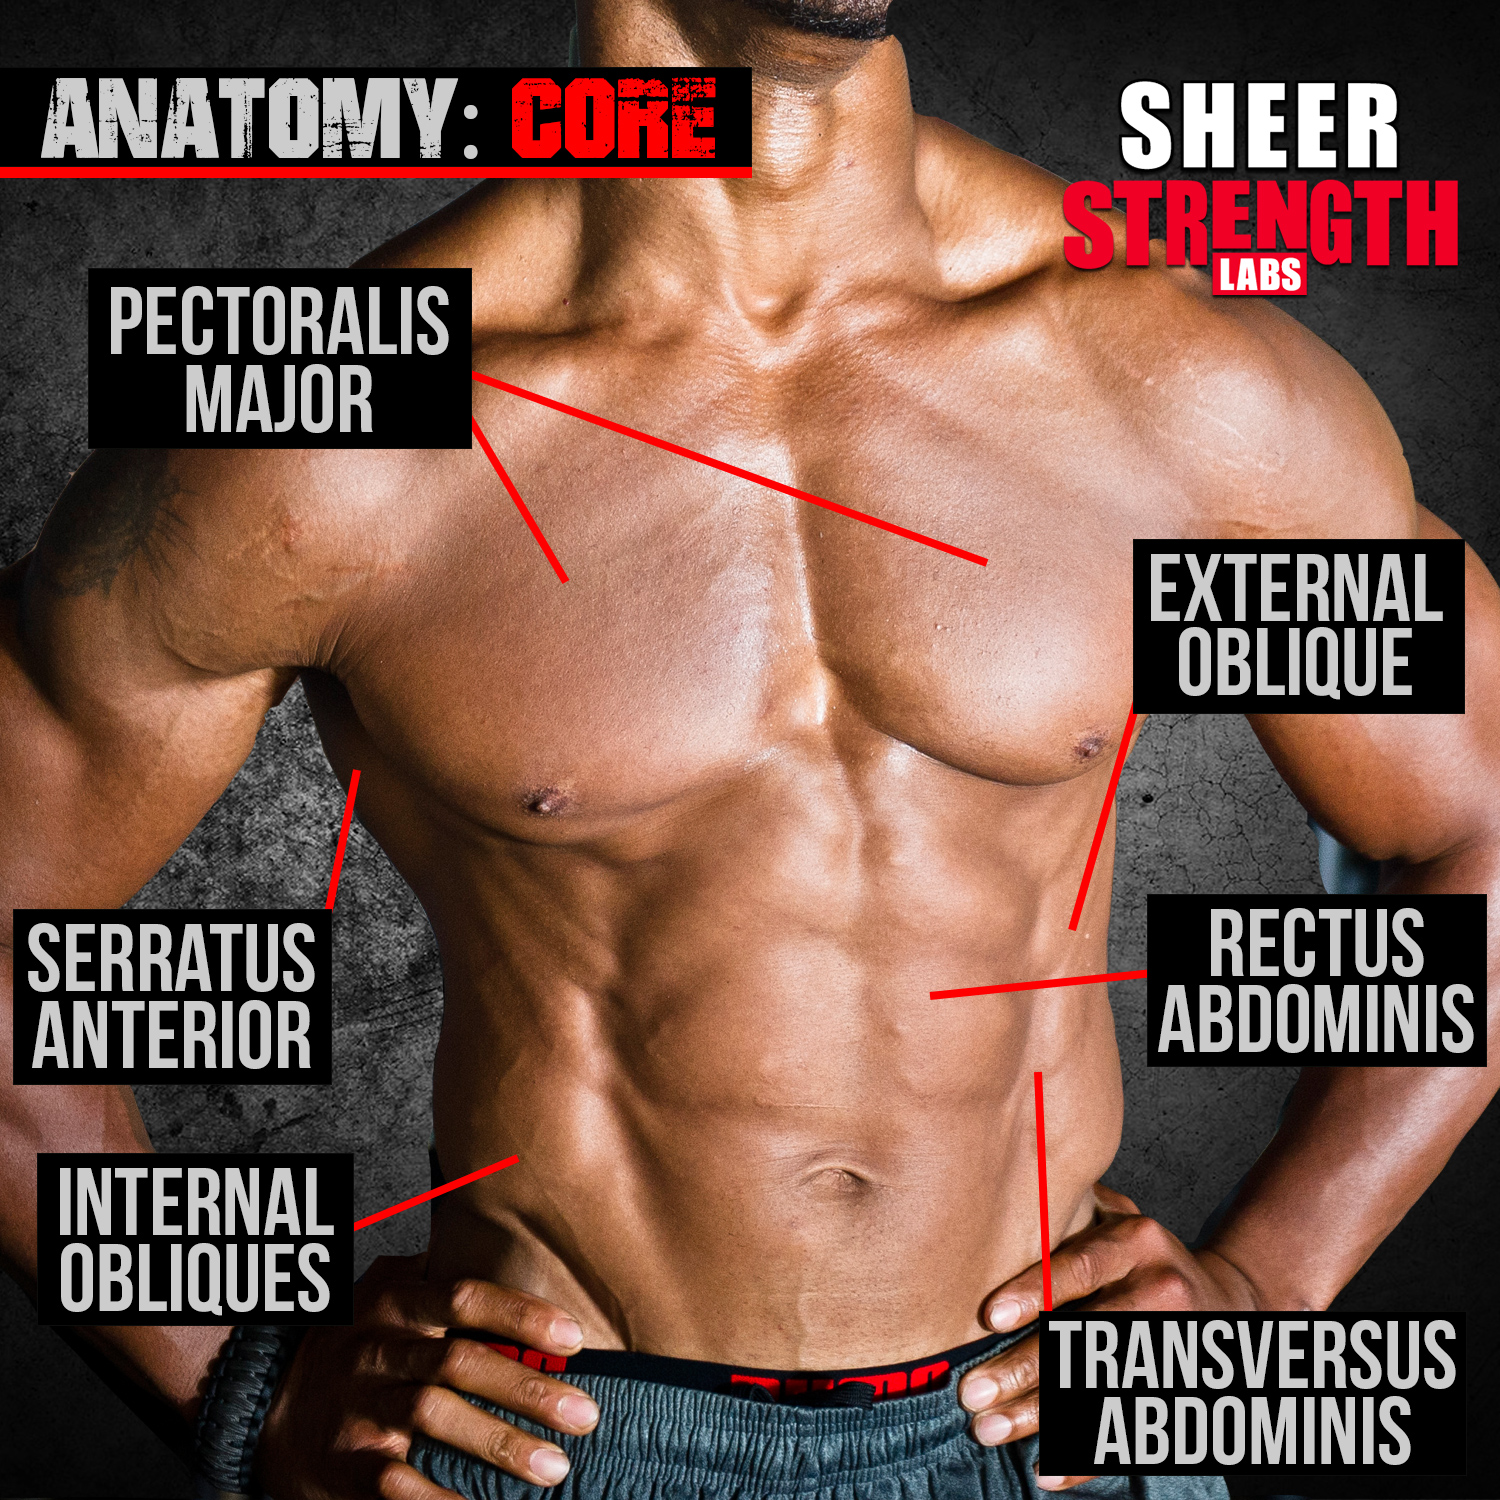 Do you know which core muscles are which?